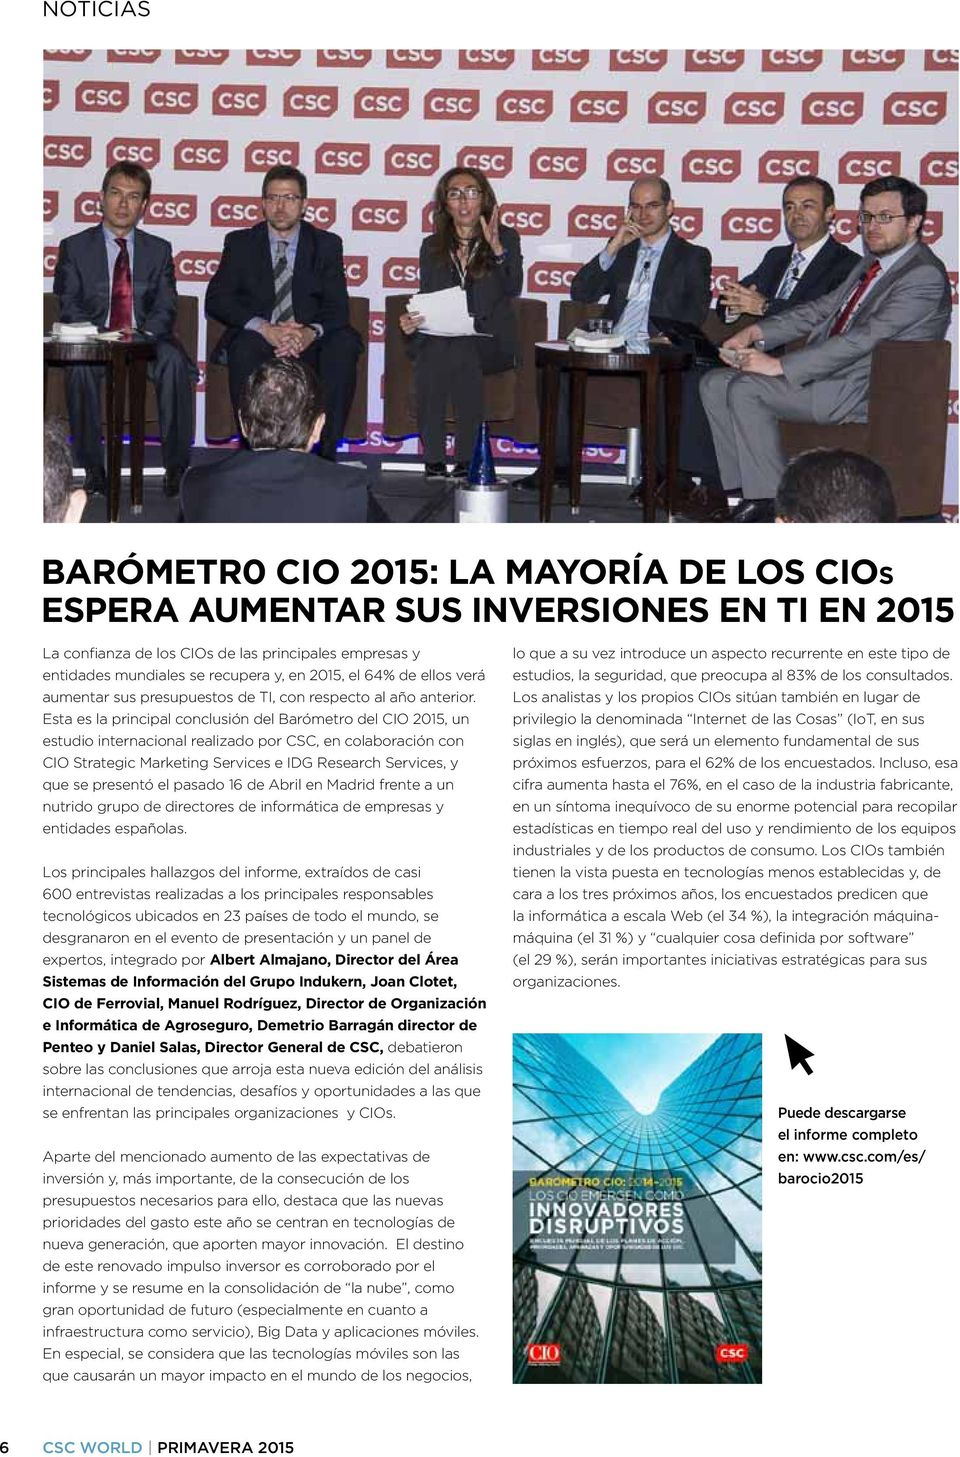 Esta es la principal conclusión del Barómetro del CIO 2015, un estudio internacional realizado por CSC, en colaboración con CIO Strategic Marketing Services e IDG Research Services, y que se presentó